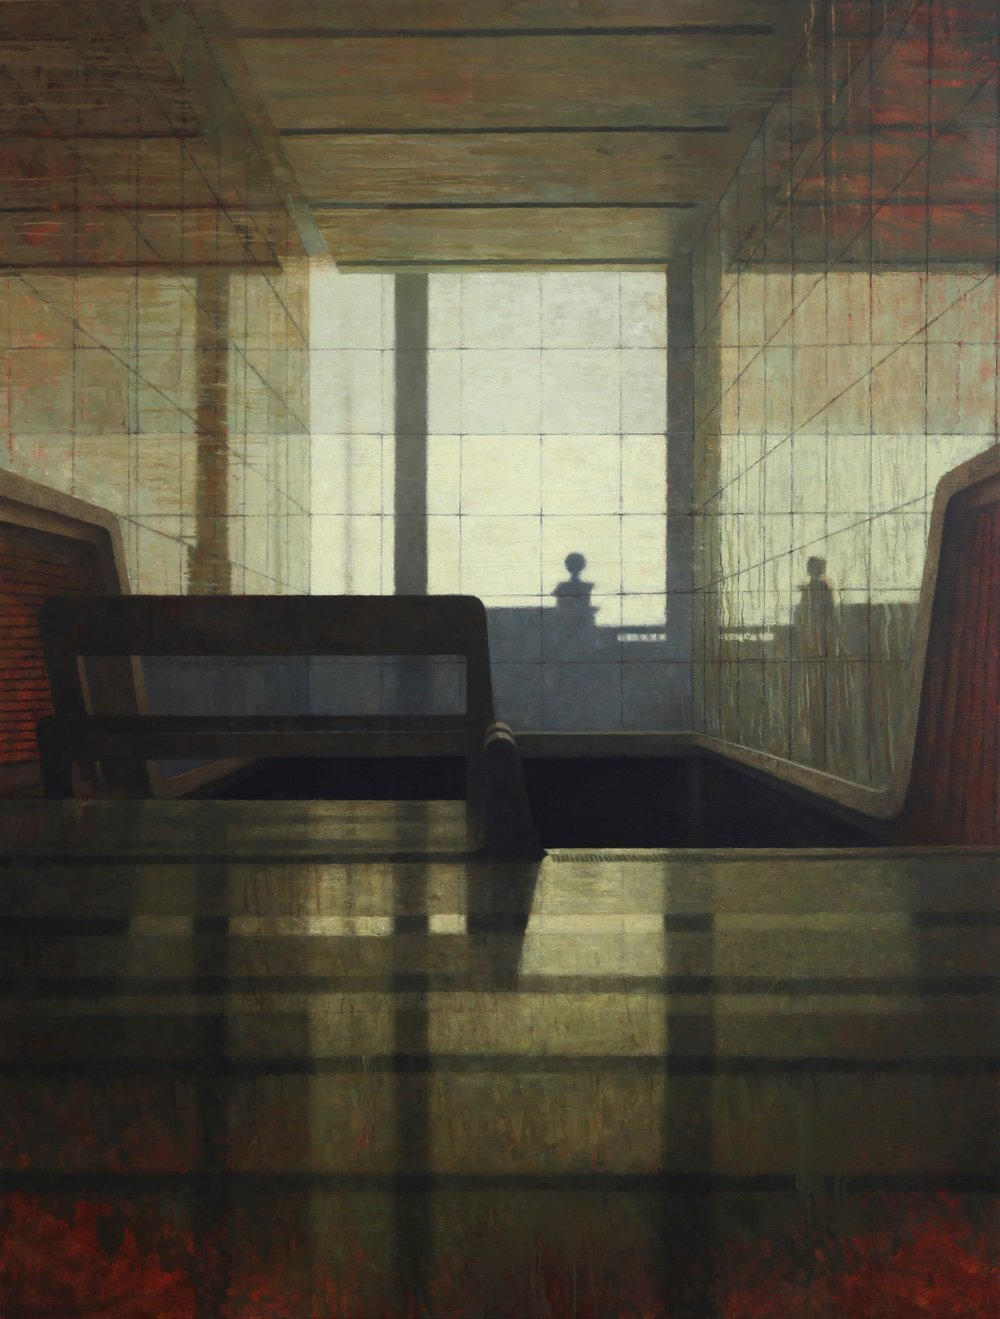 Interior 370 (Foyer I), Oil on linen, 1980mm x 2600mm, 2017